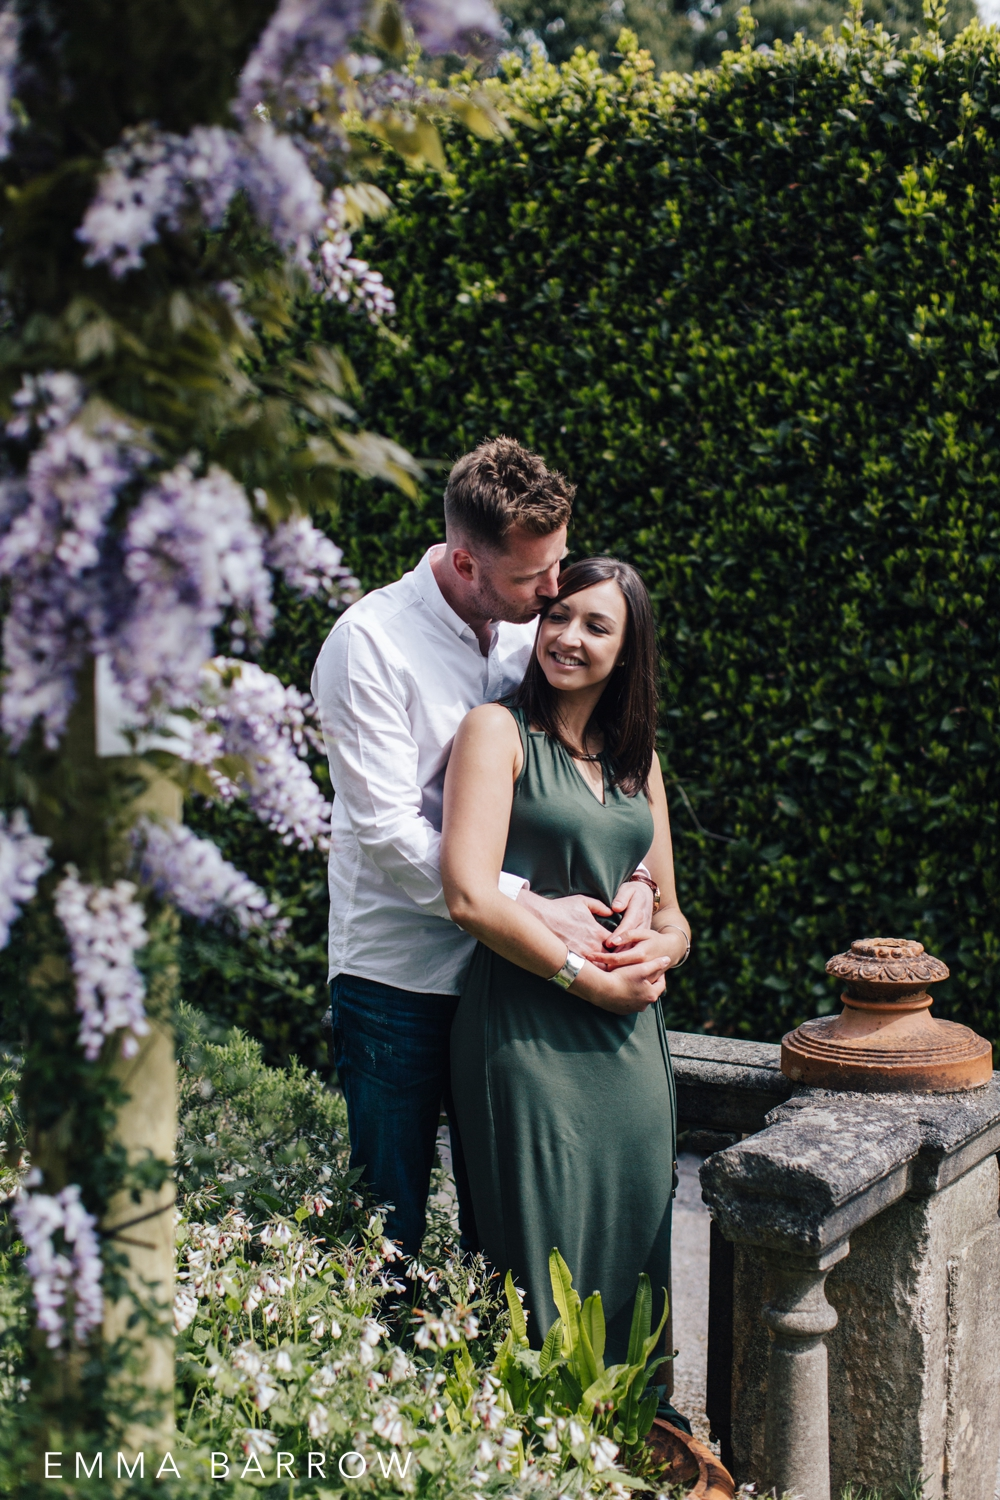 emmabarrow_traceydavidPreWed-56.jpg